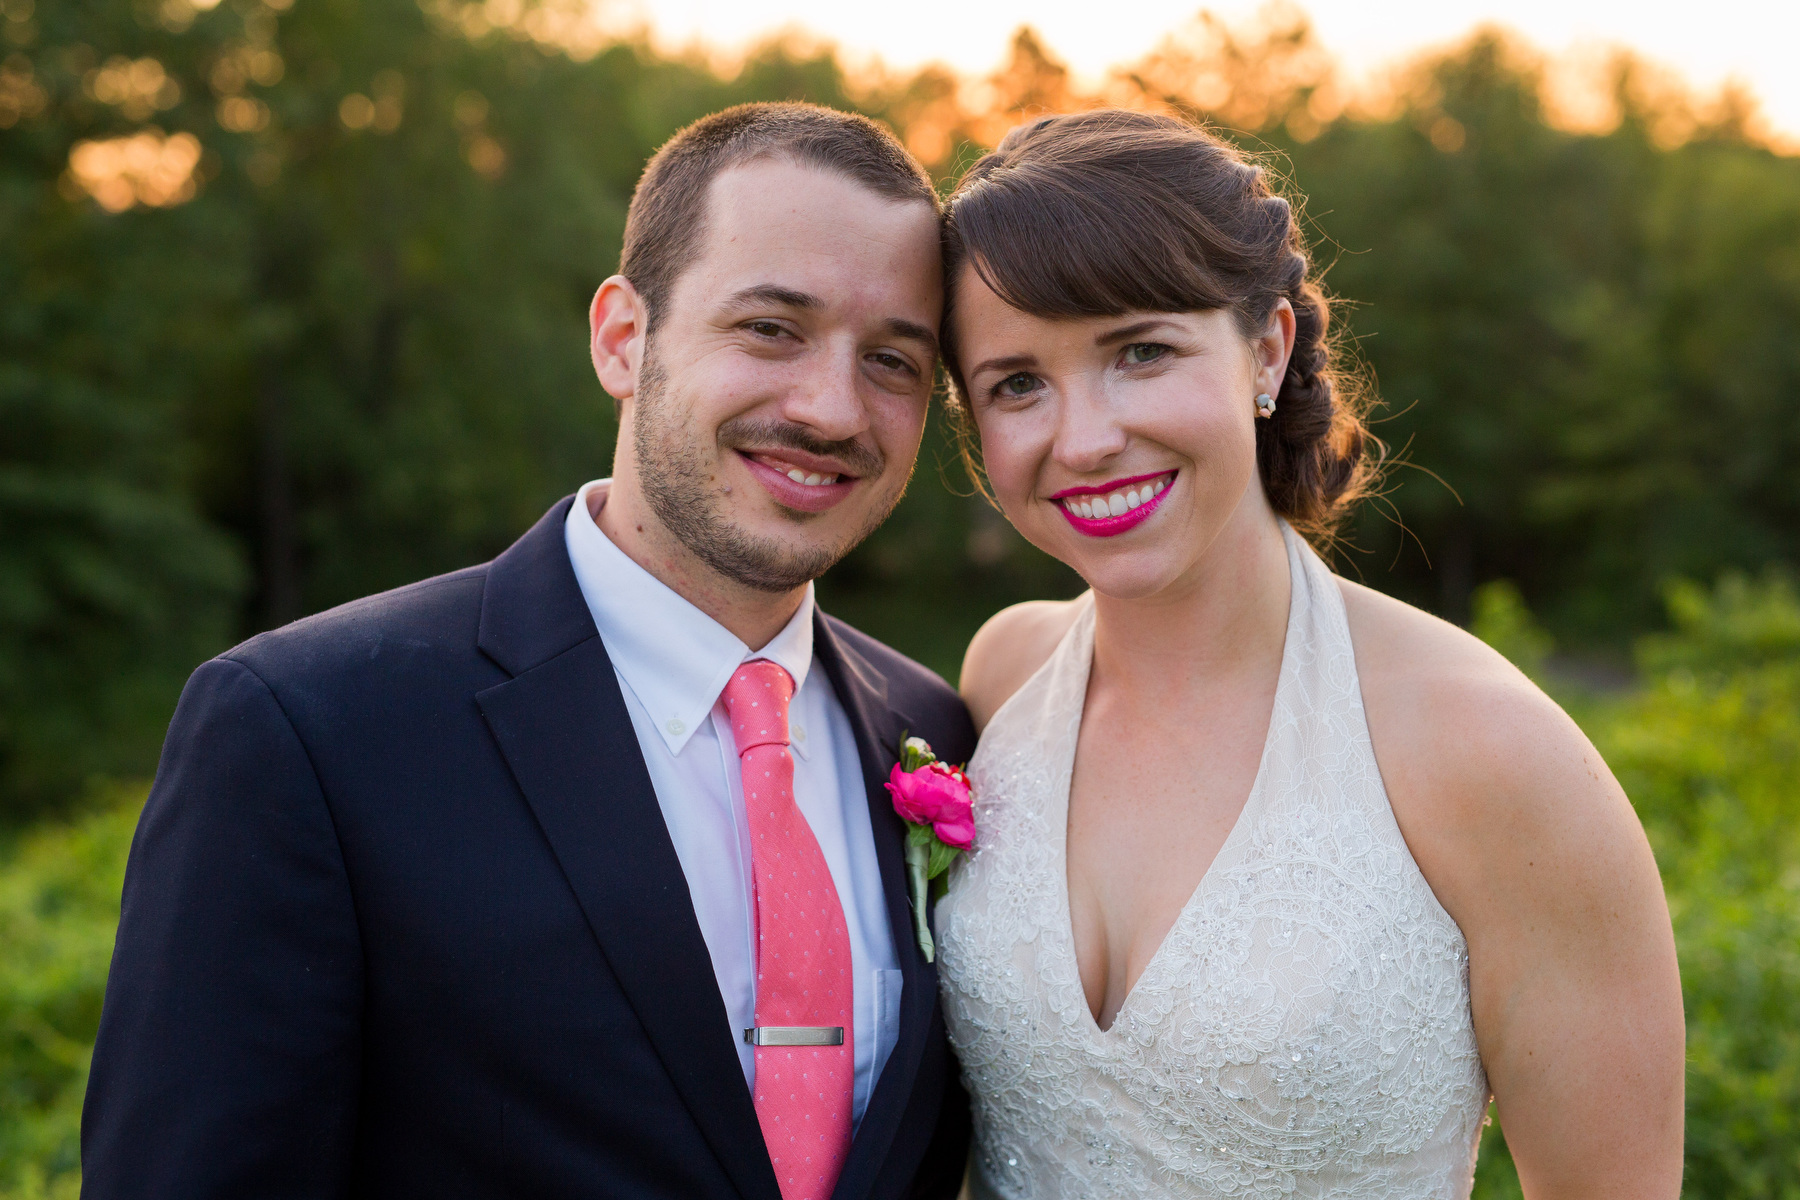 A bride and groom pose for portraits at The Piedmont Club during their wedding.